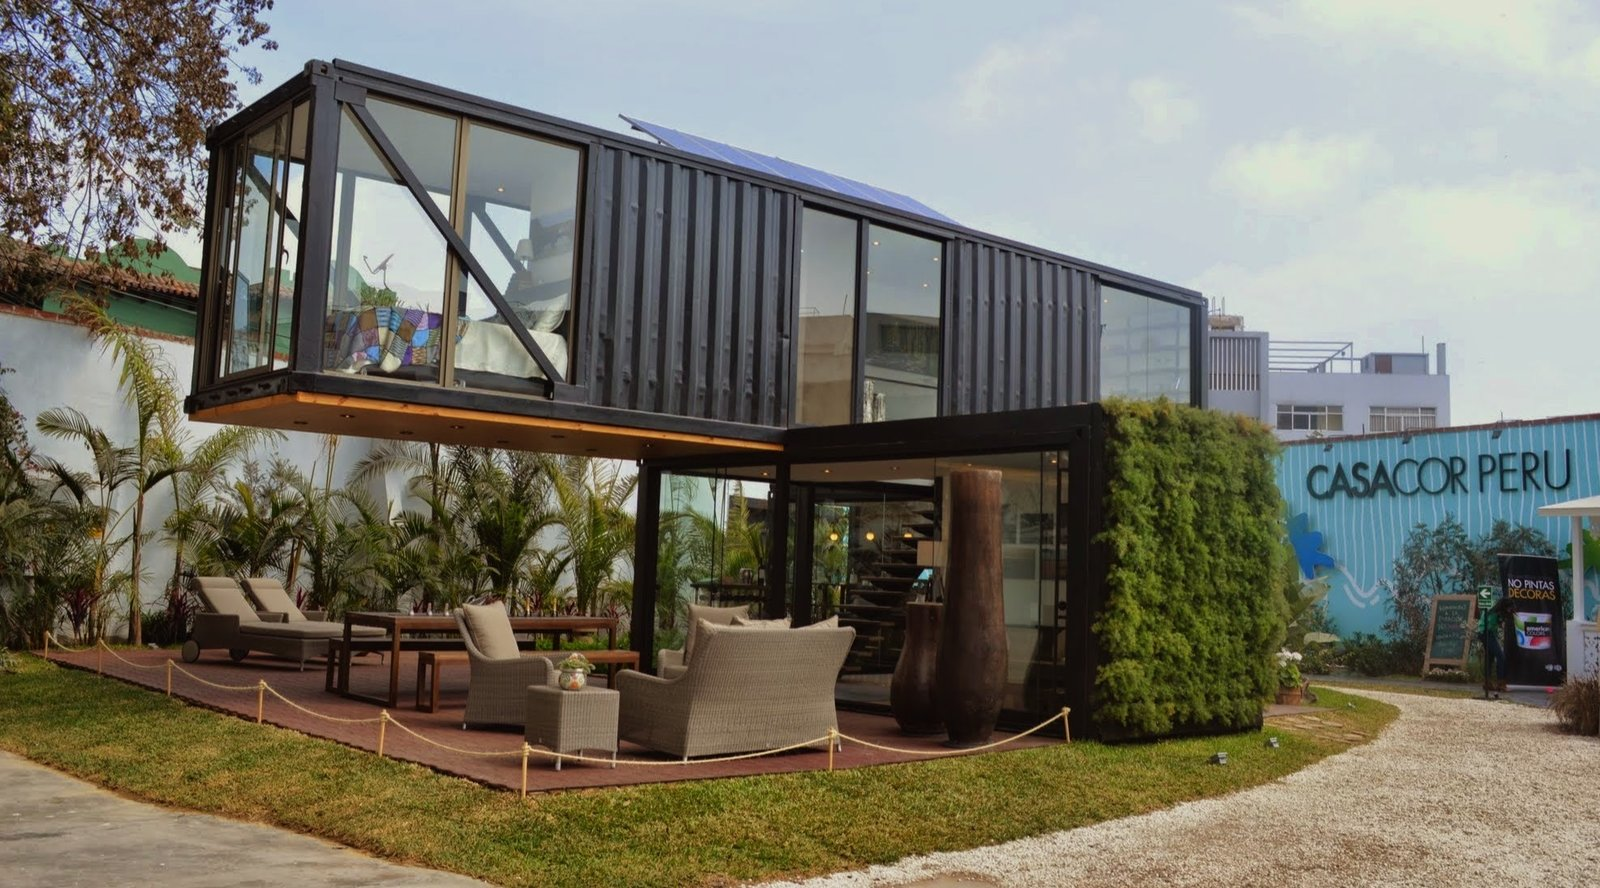 Peruvian-born designer Sachi Fujimori's Casa Reciclada, or Recycled House, was constructed from a used shipping container. Architects Anna Duelo, Úrsula Ludowieg OPhelan and Marc Koenig also collaborated on the project.  Amazing Examples of Shipping Container Architecture by Diana Budds from A Modern Show House in Lima, Peru